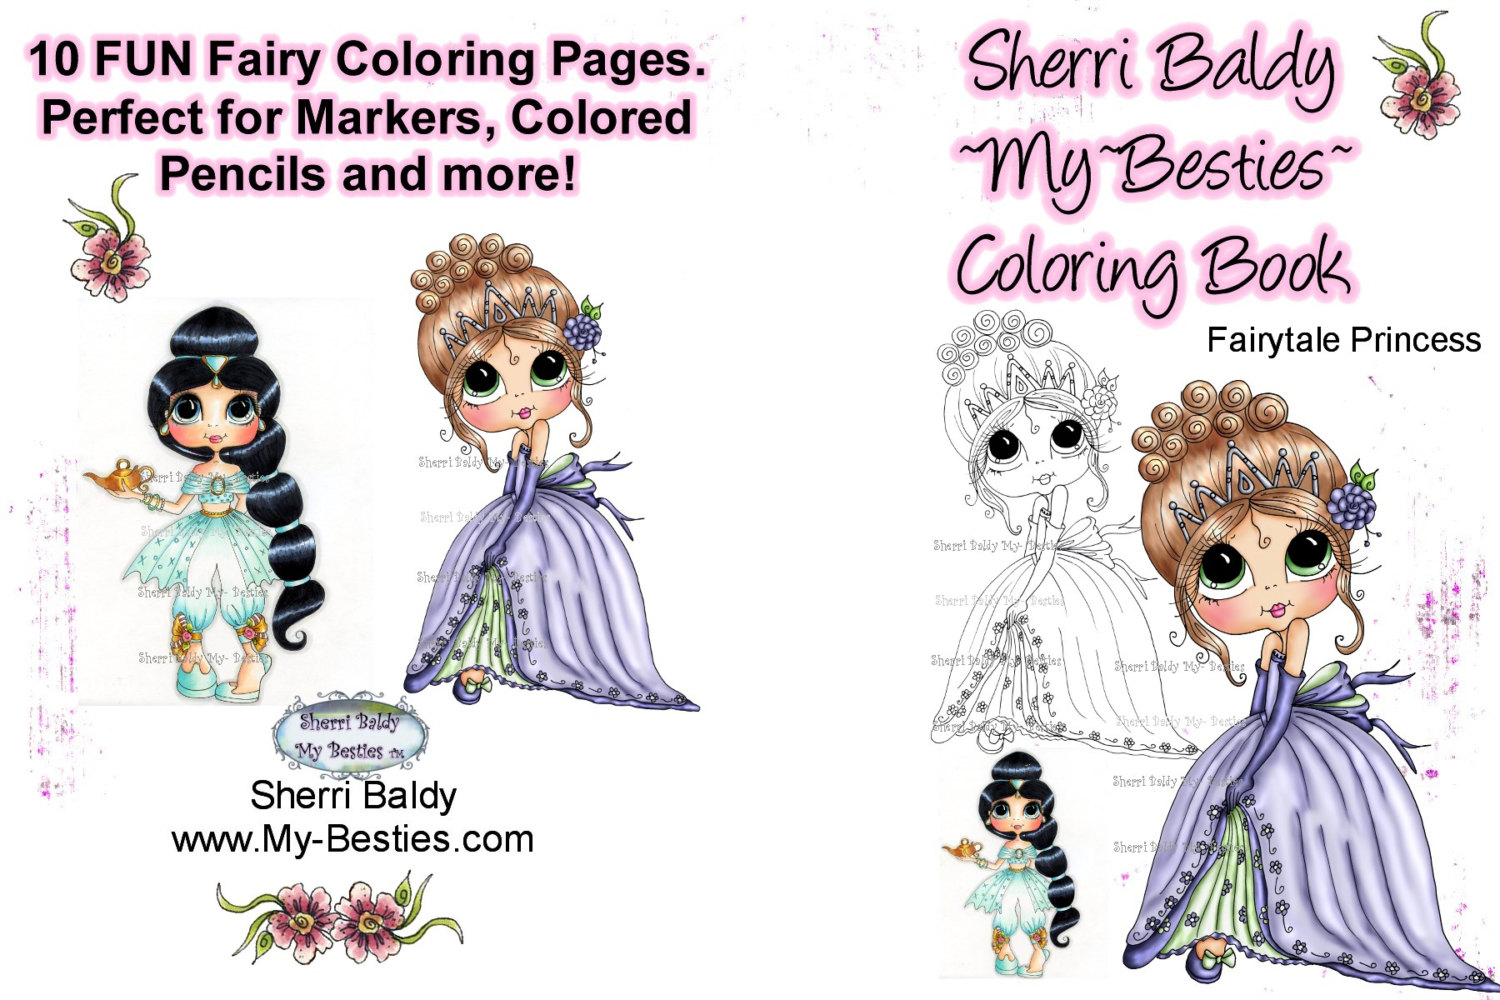 Coloring Book 5 x 7 Fairytale Princess 10 pages Big Eye Big Head